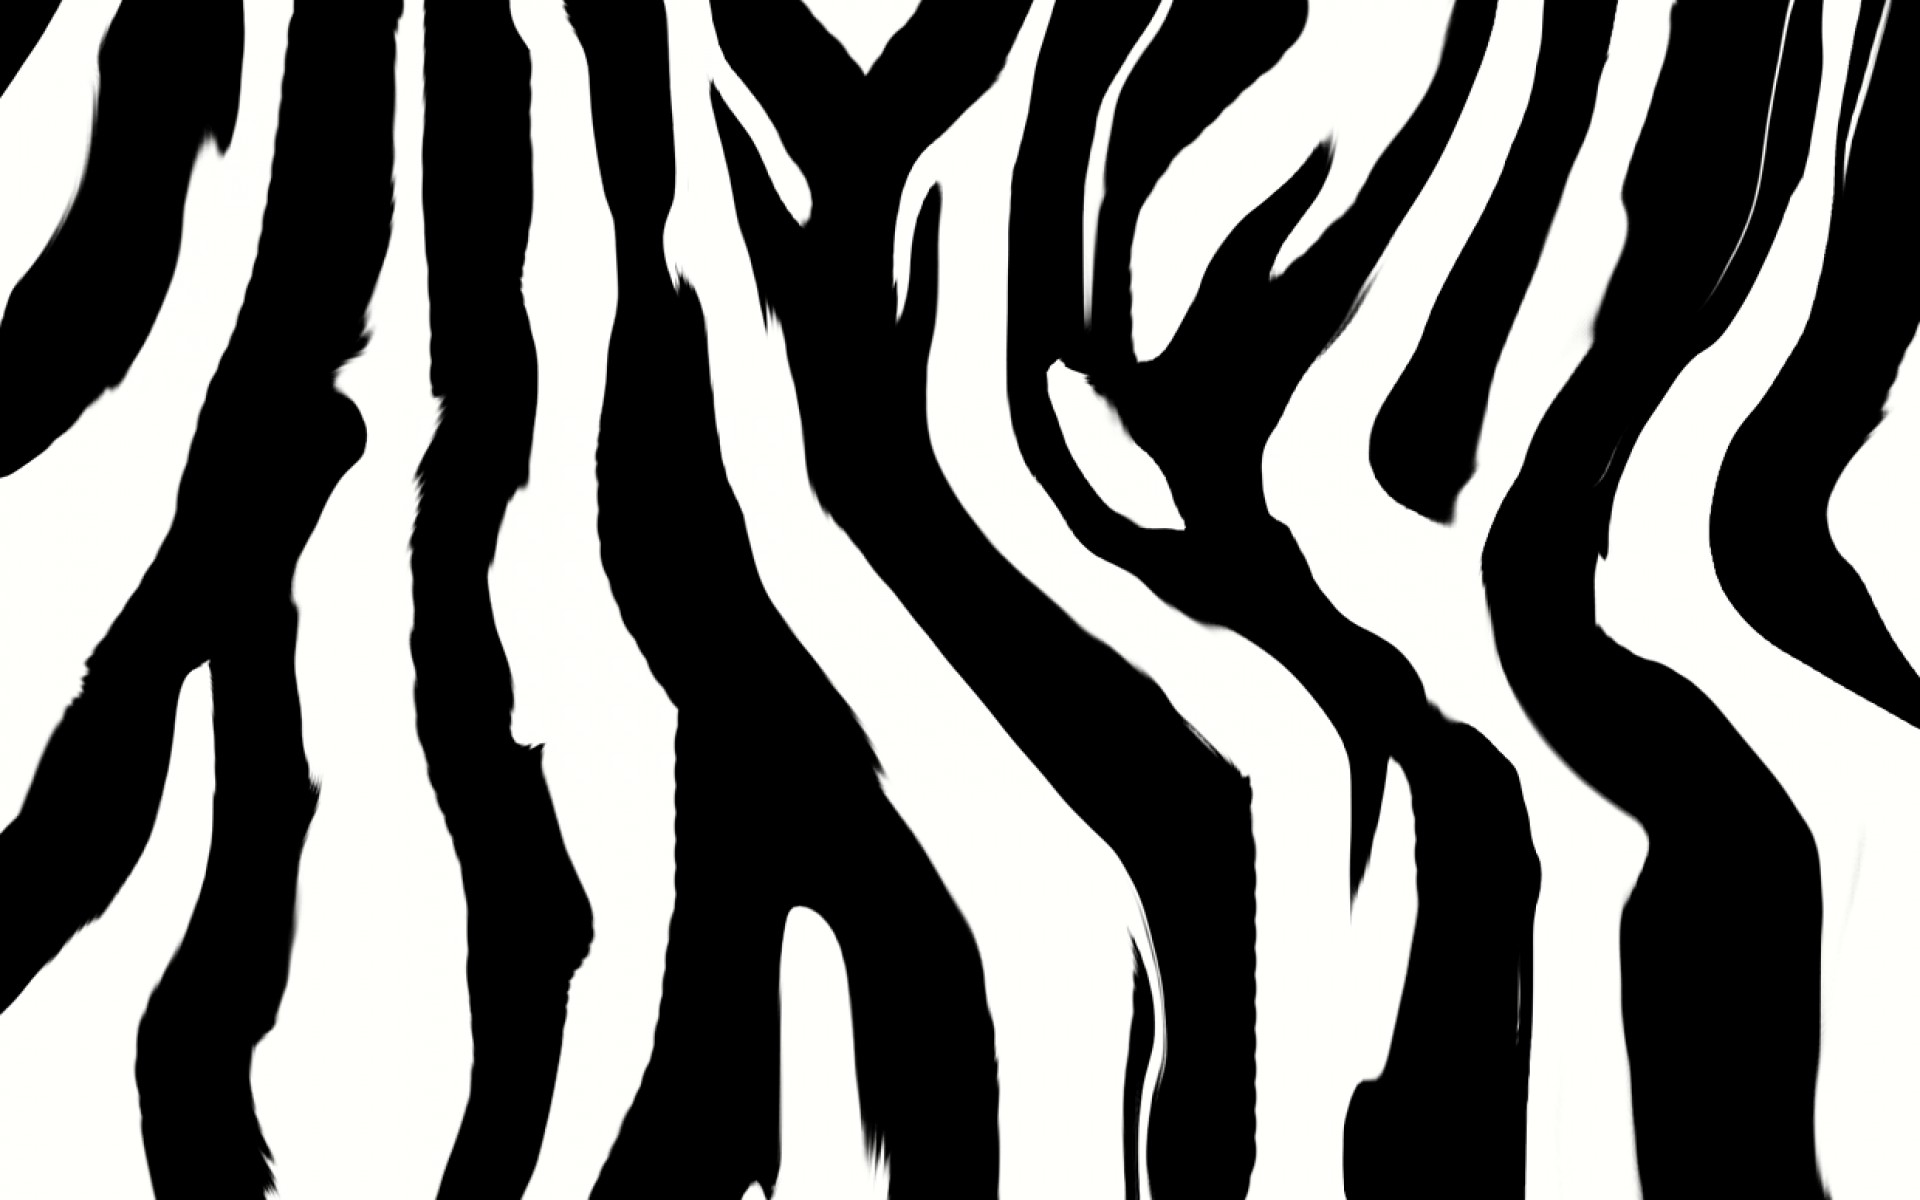 Zebra background Download free stunning HD wallpapers for